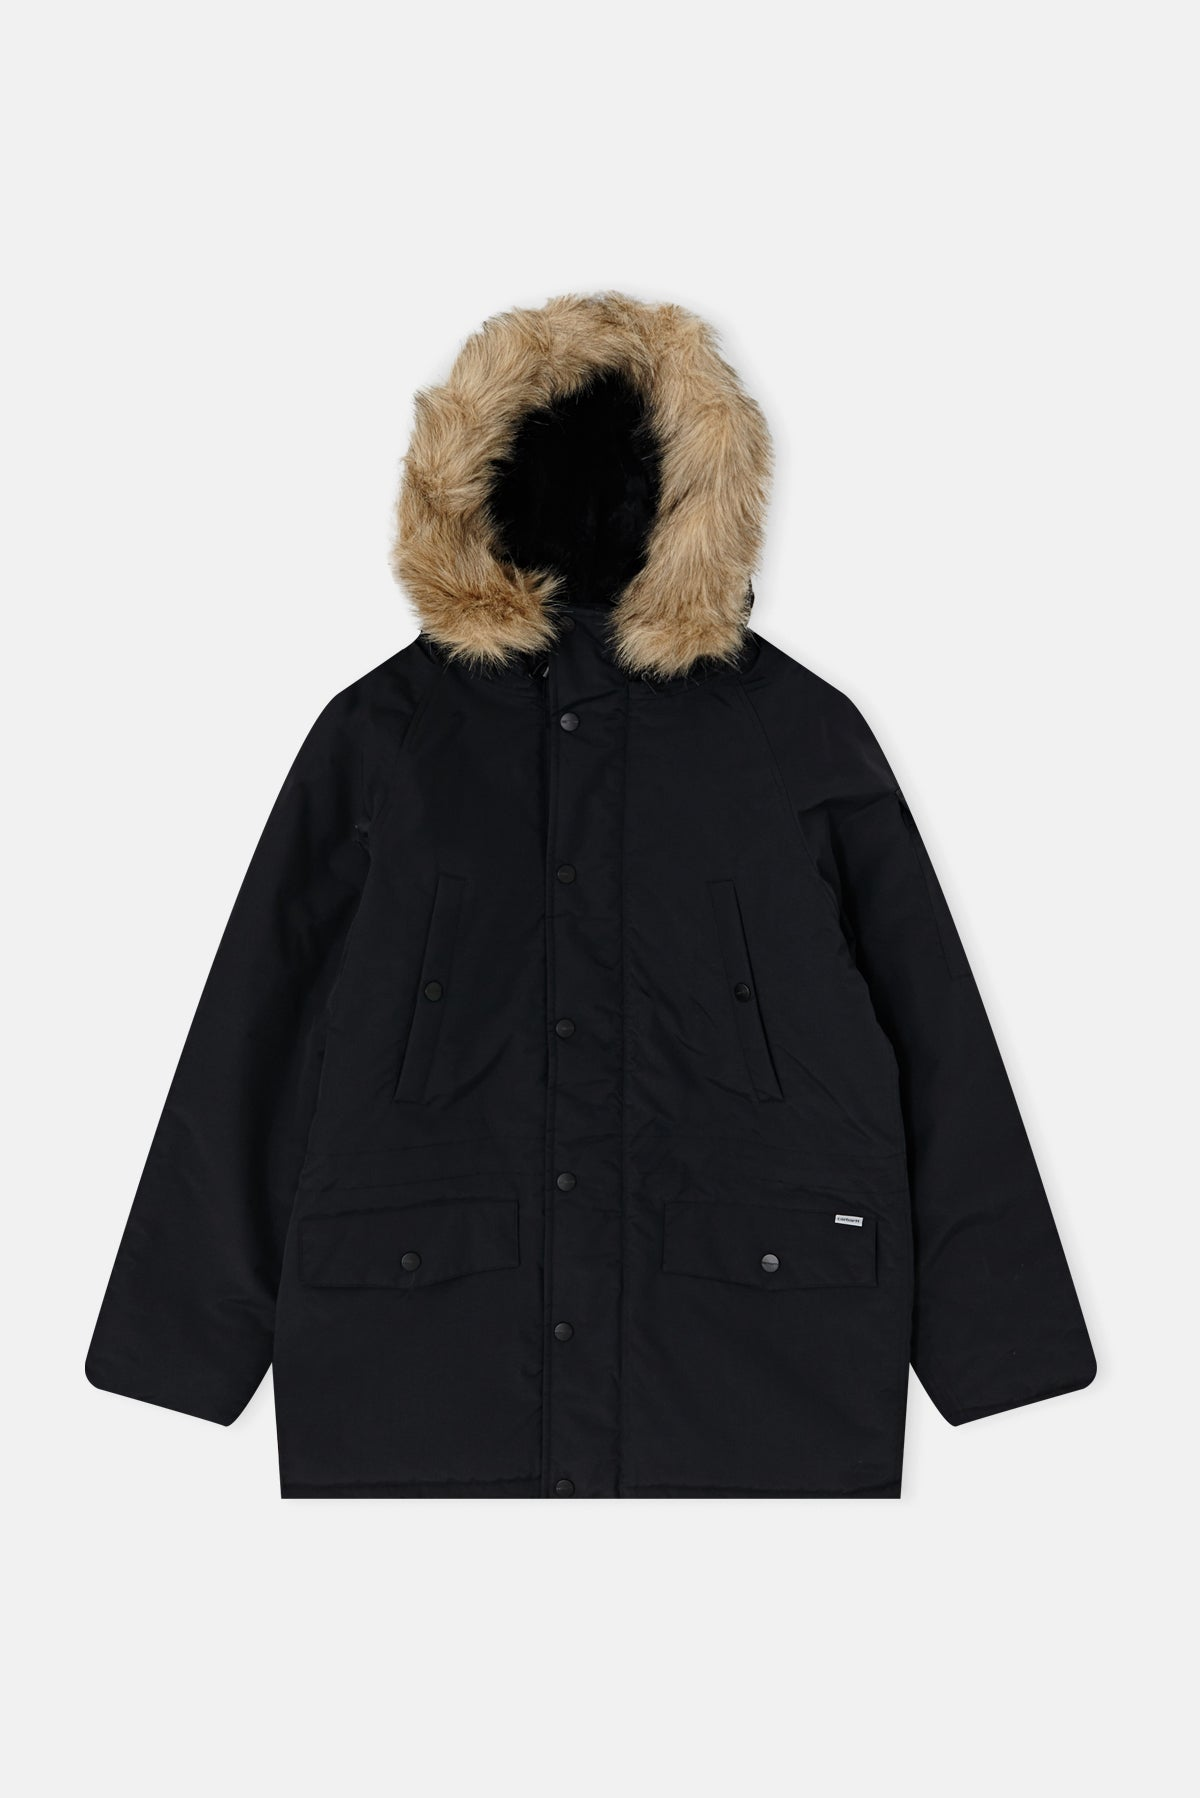 cb558093de9 Chaqueta Carhartt Anchorage Parka available from Priory